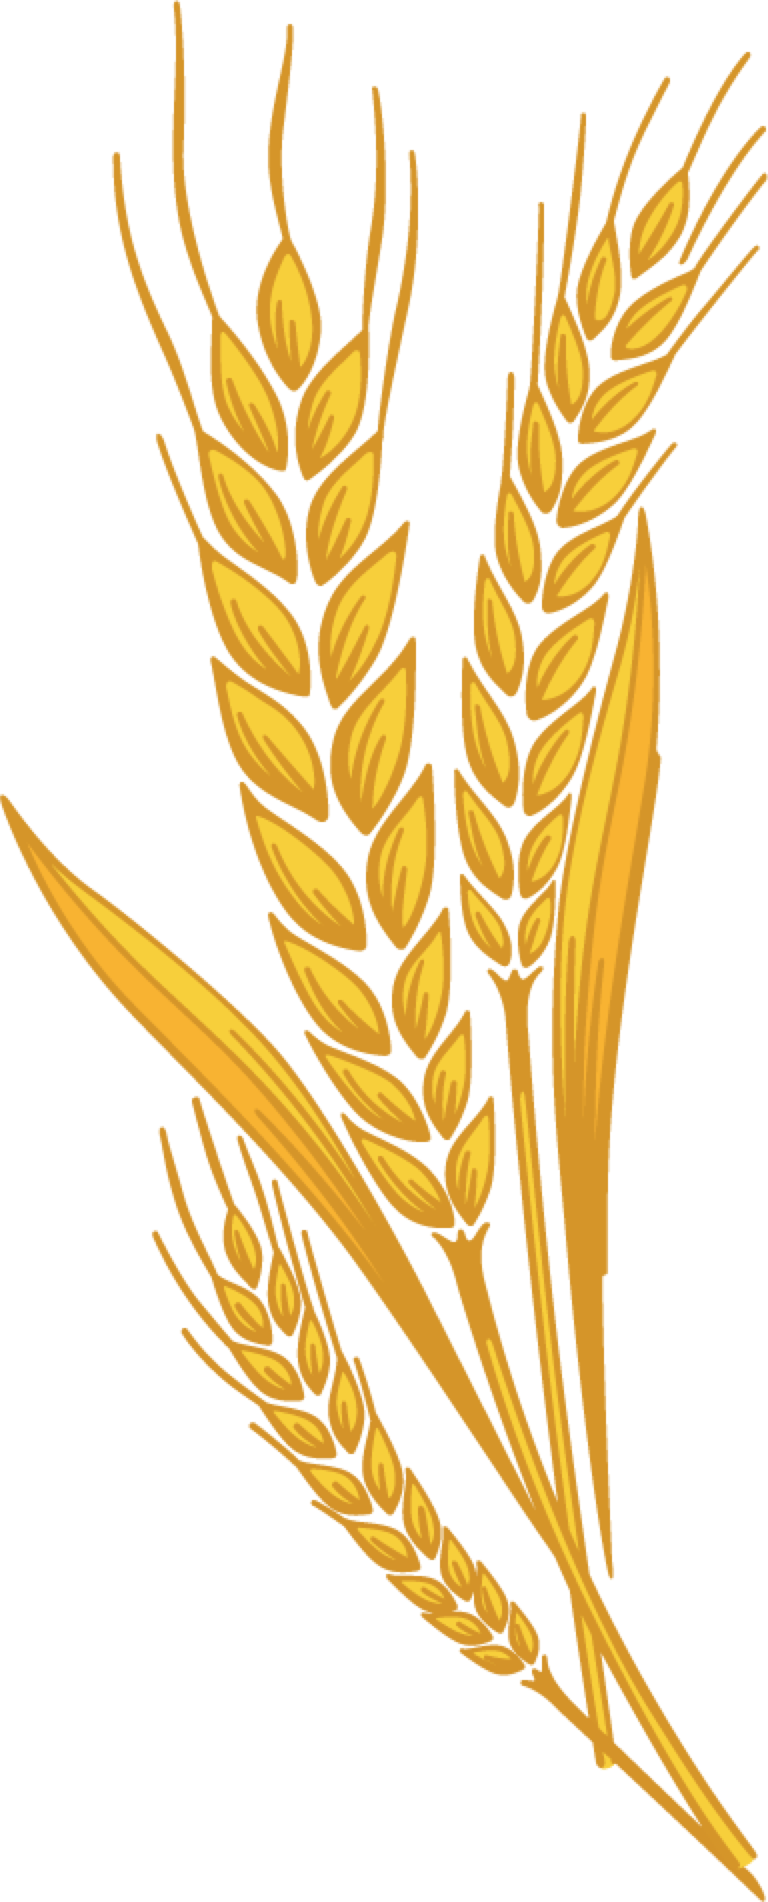 Wheat clipart wheat seed. Collection of free grained